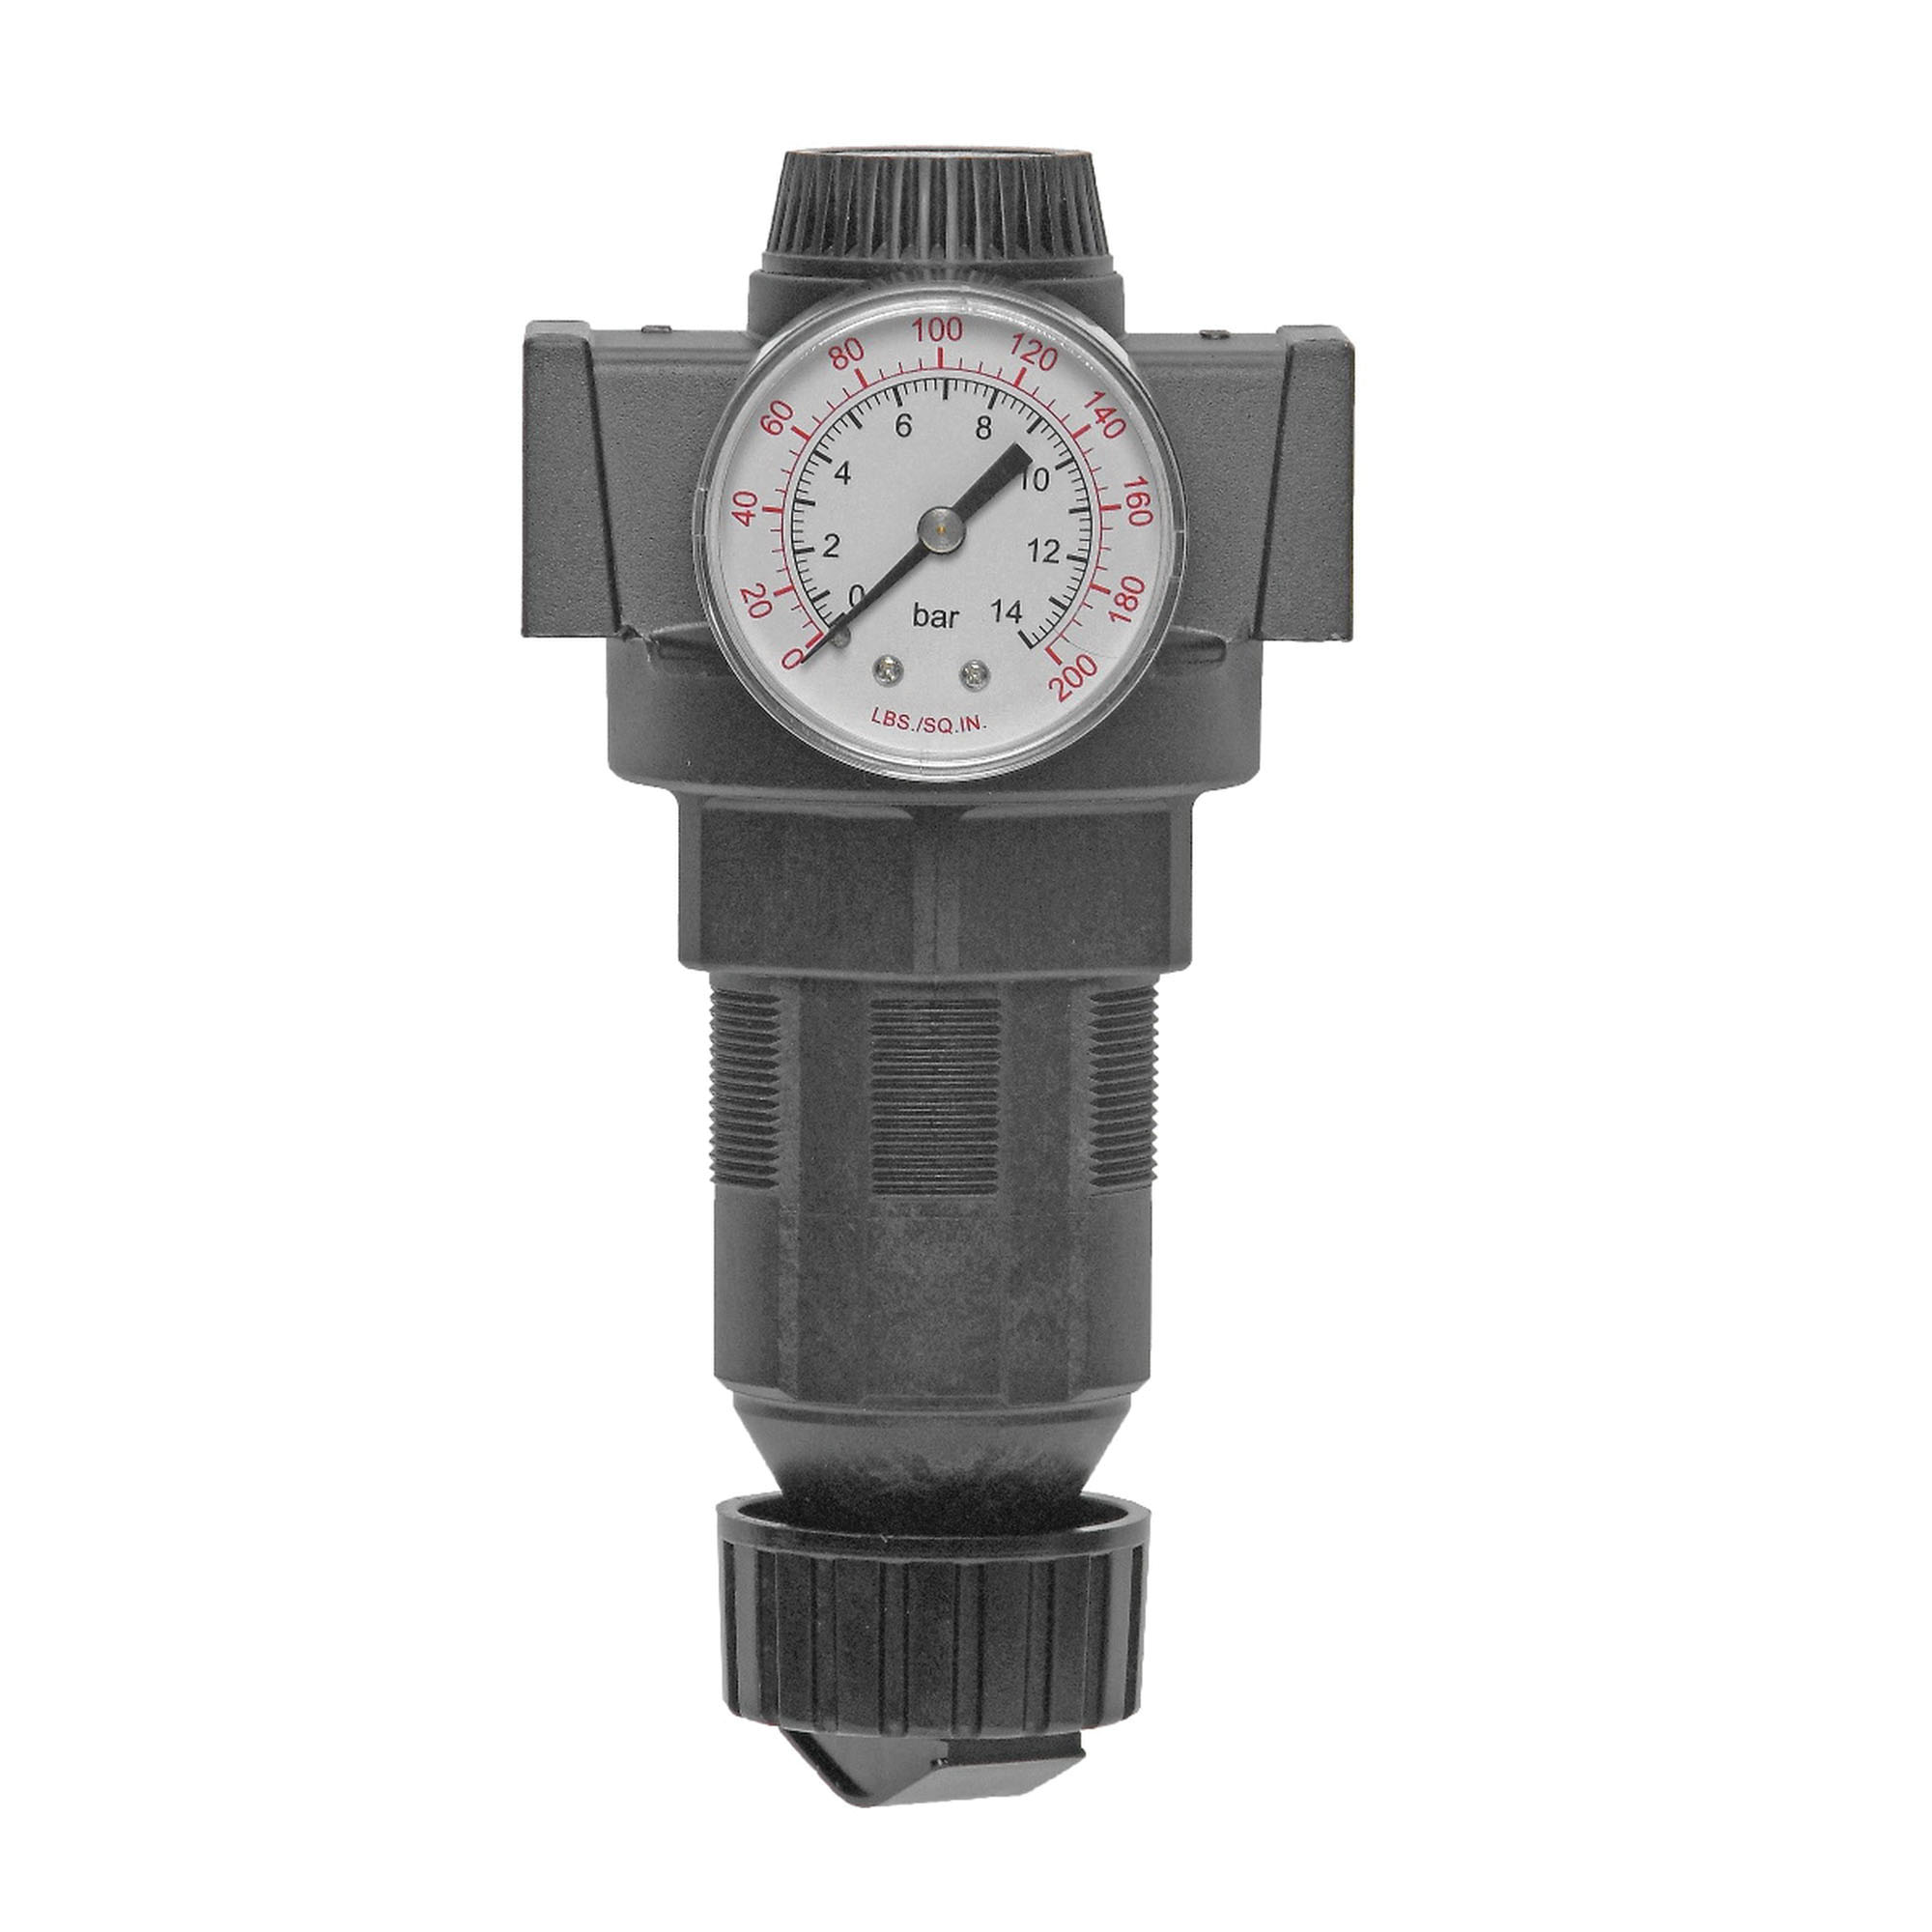 Master Pneumatic Vanguard R100-6 Zinc Full Size Pressure Regulator, 3/4 in NPTF, 300 psi Inlet, 125 psi Outlet, 40 - 175 deg F